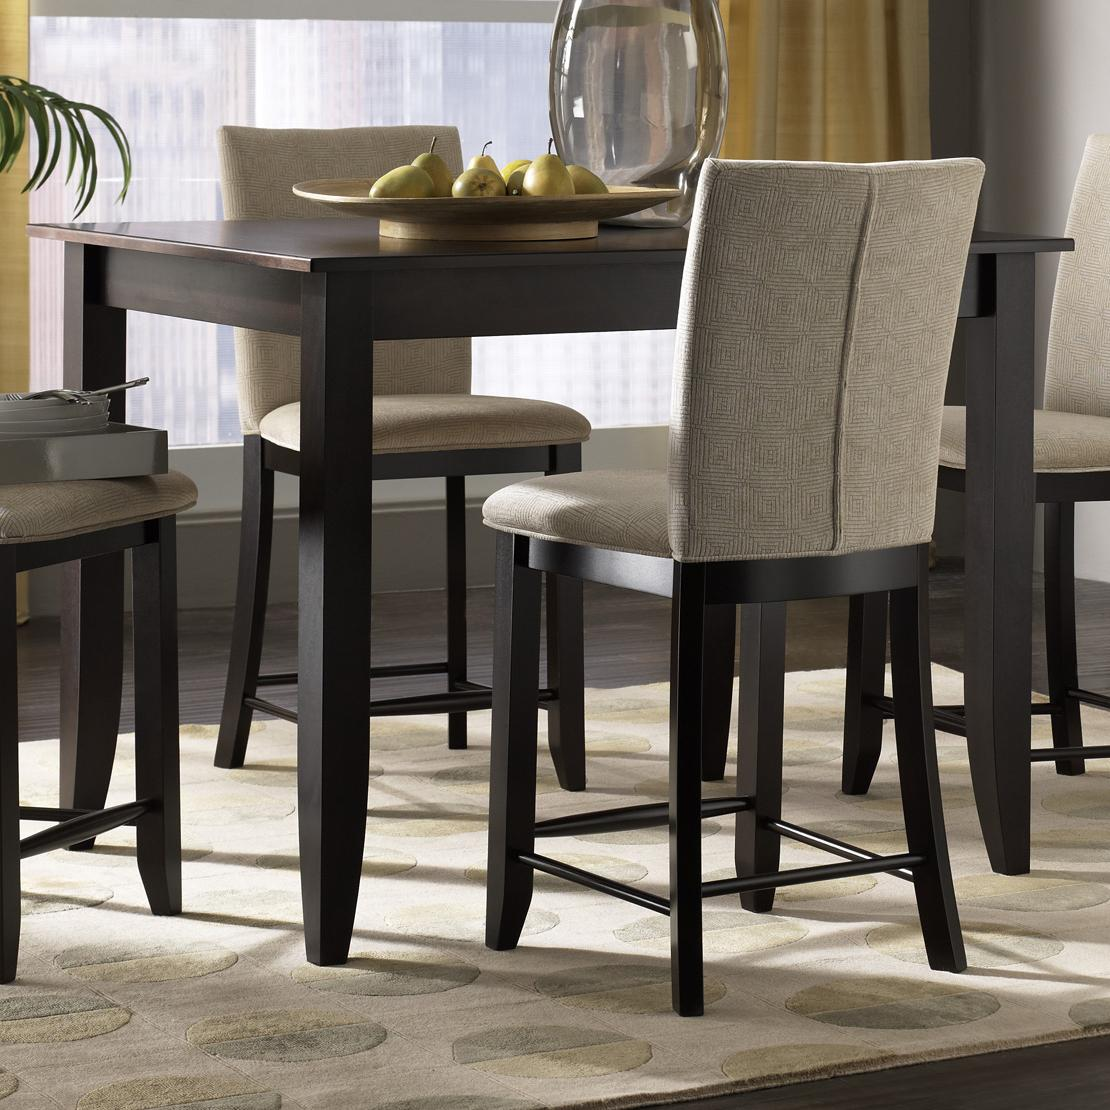 High Kitchen Tables And Stools: High Dining Customizable